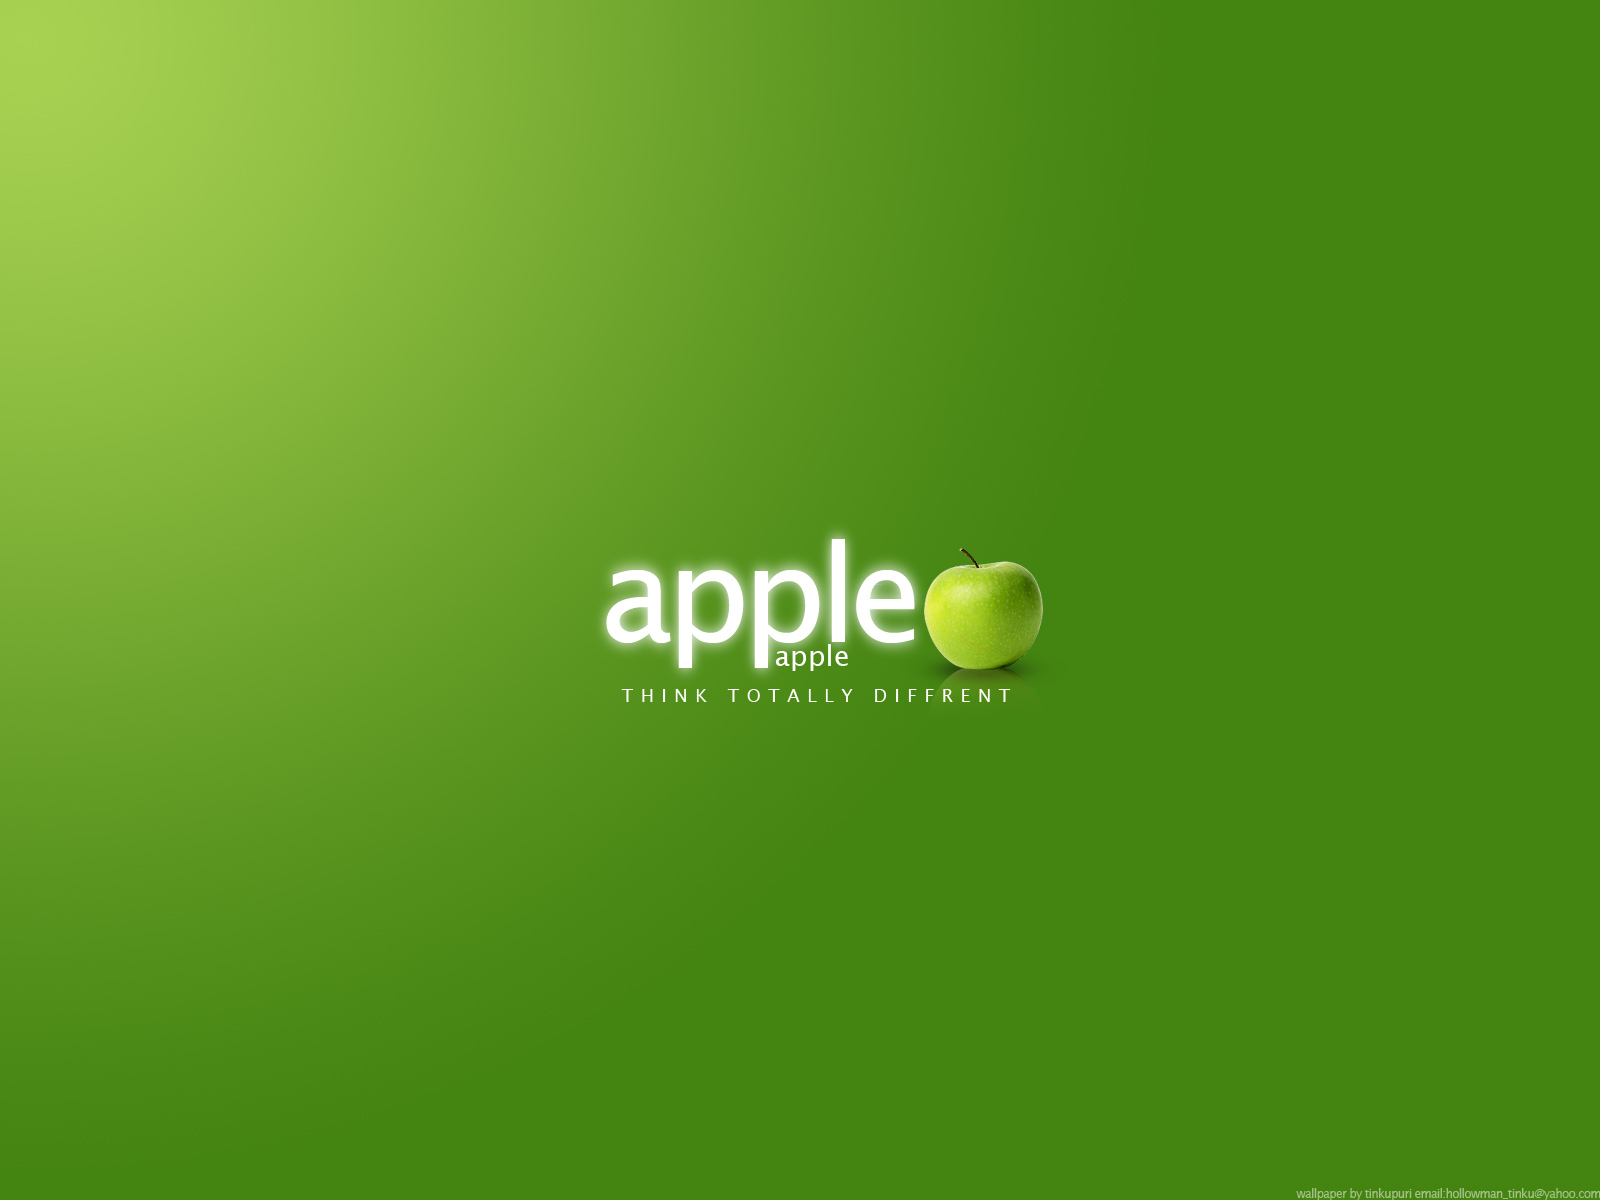 Apple Logo Wallpaper HD Latest Best Wallpapers 2011 1600x1200